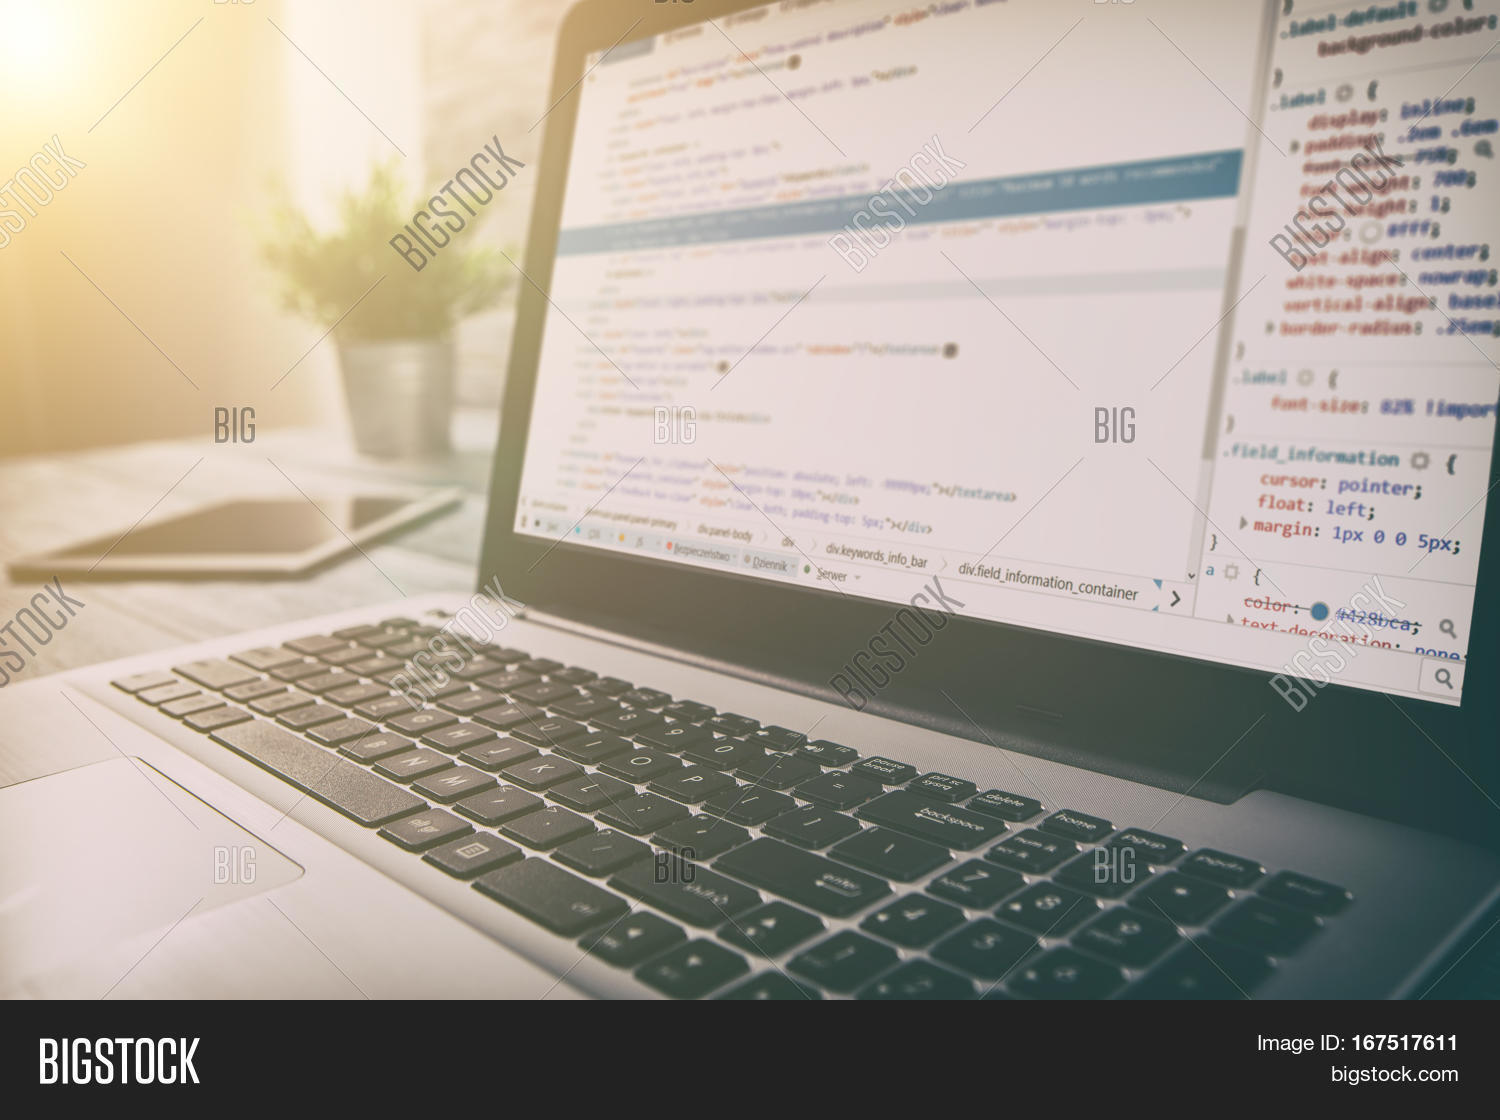 Coding Code Program Image Photo Free Trial Bigstock Electronic Design Software Programming Developer Compute Web Development Coder Work Closeup Desk Write Workstation